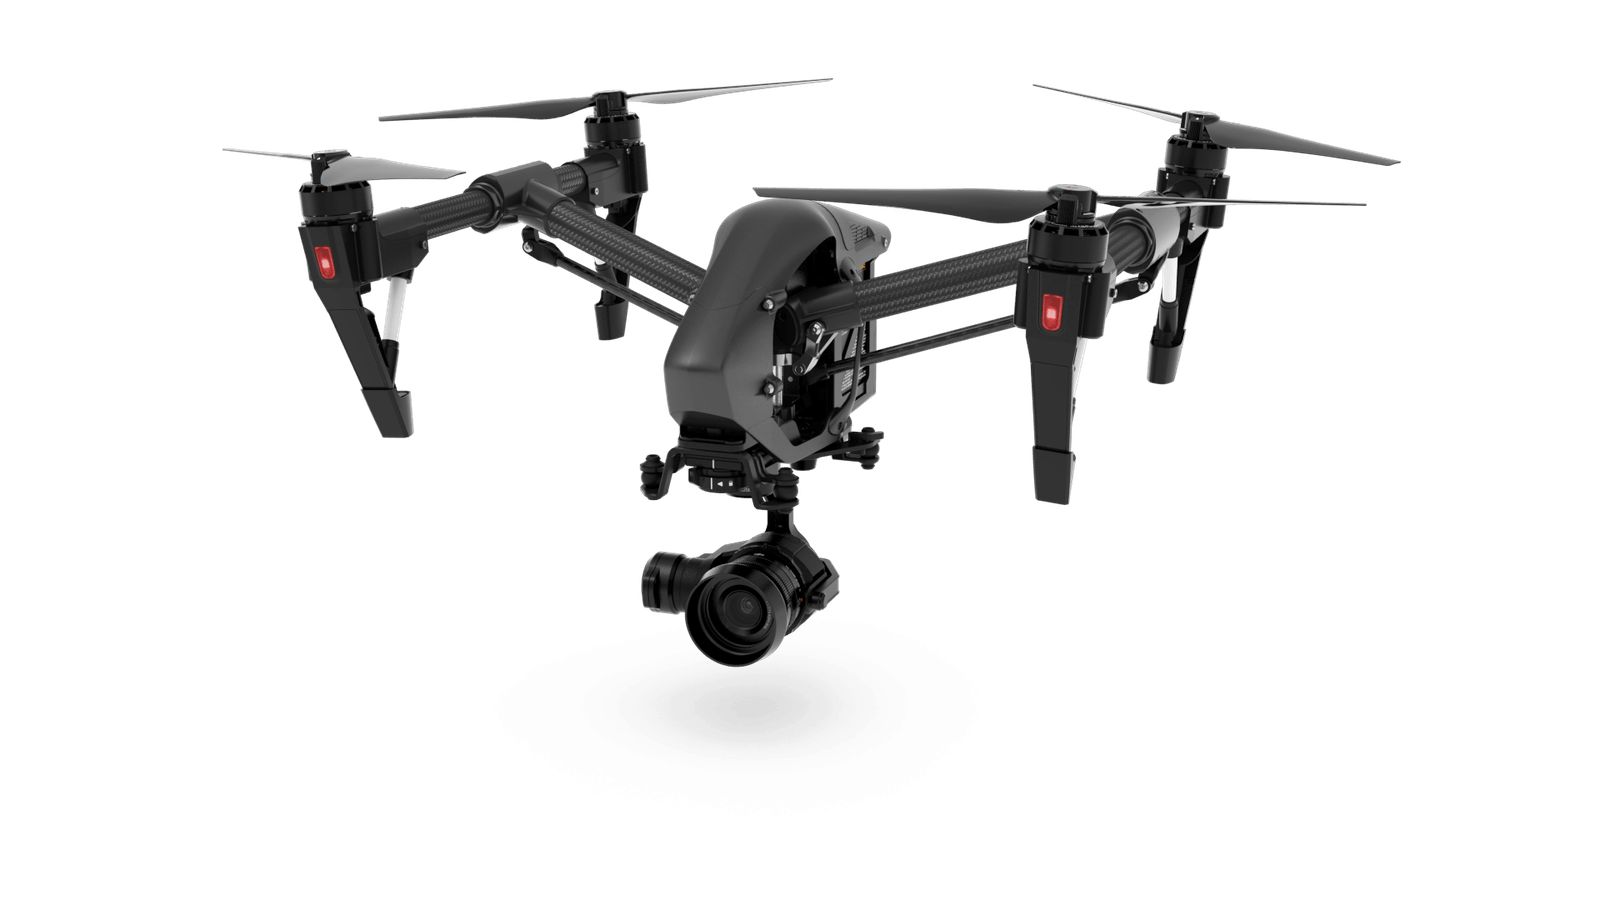 personal drone with camera with Dji Drone on Ar Drone 2 0 Ob furthermore Stock Illustration Rc Drone Quadcopter Camera Black Symbol Illustration Web Image53534618 as well Watch together with Fujifilm Instax Mini 90 Neo Classic  pact Digital Camera Brown besides 2015 11 Awesome Drone Technology.